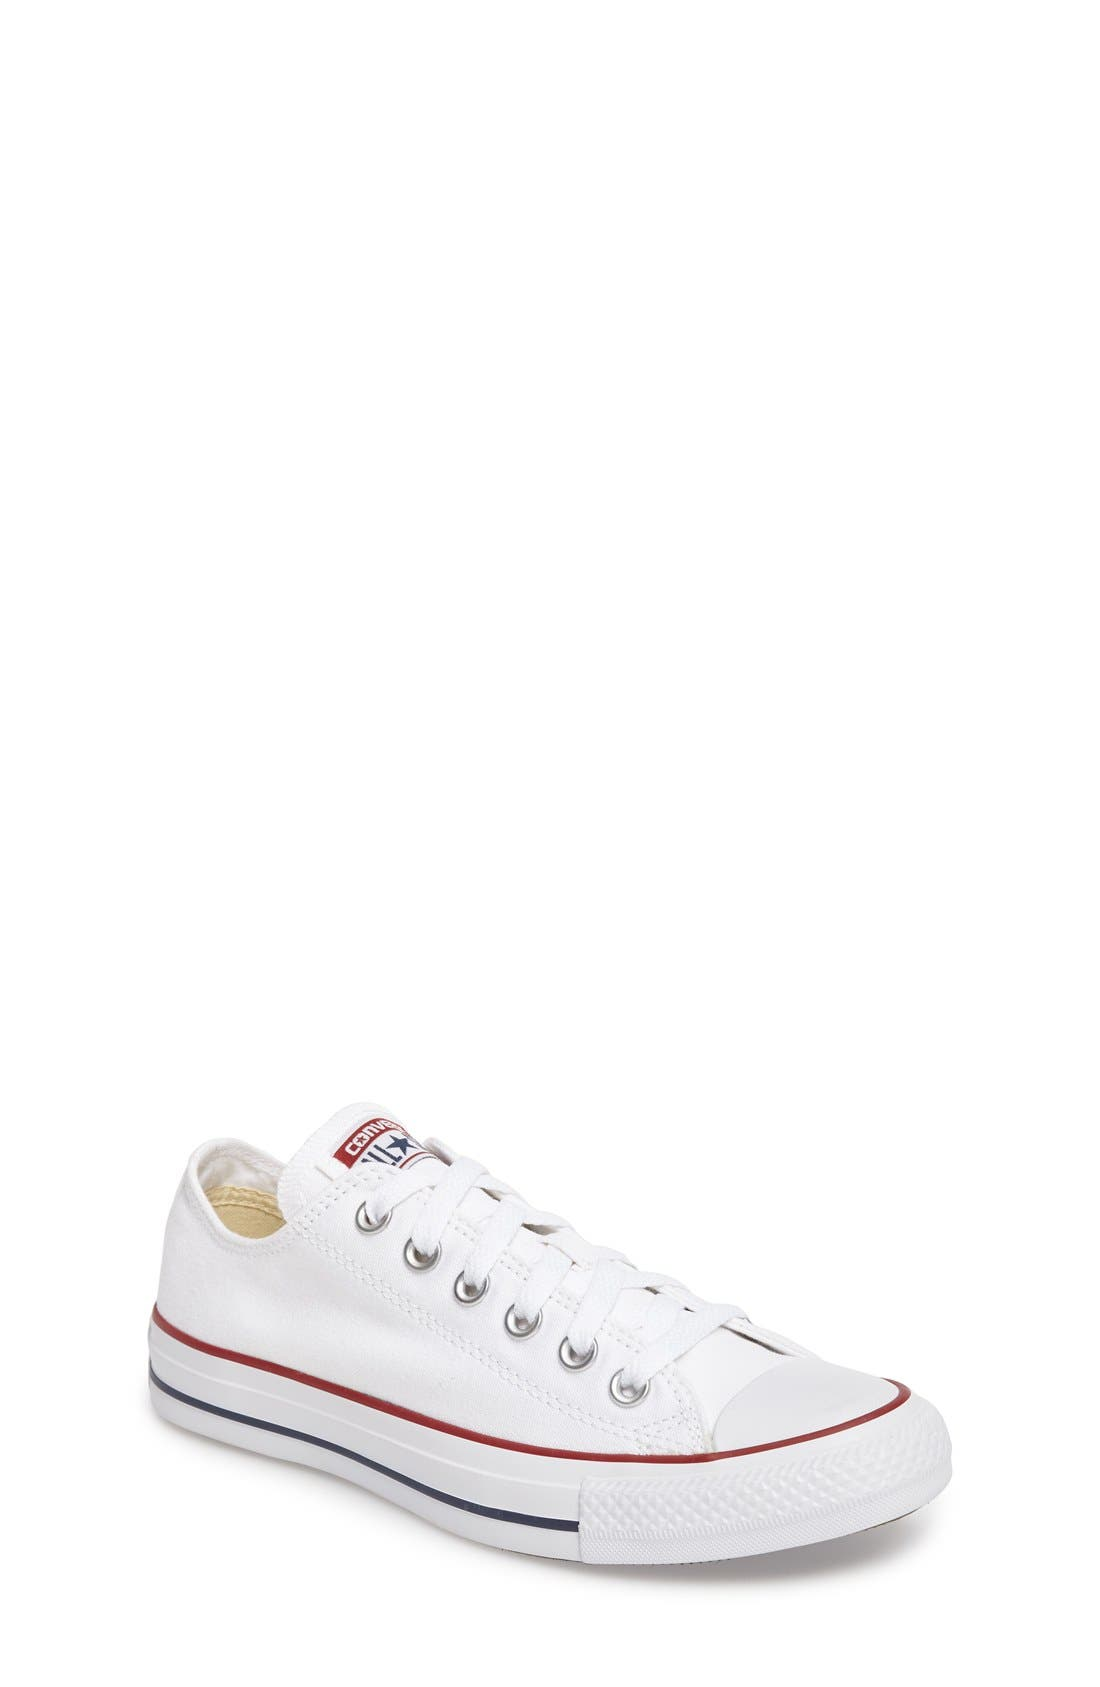 Alternate Image 1 Selected - Converse Chuck Taylor® Sneaker (Toddler, Little Kid & Big Kid)